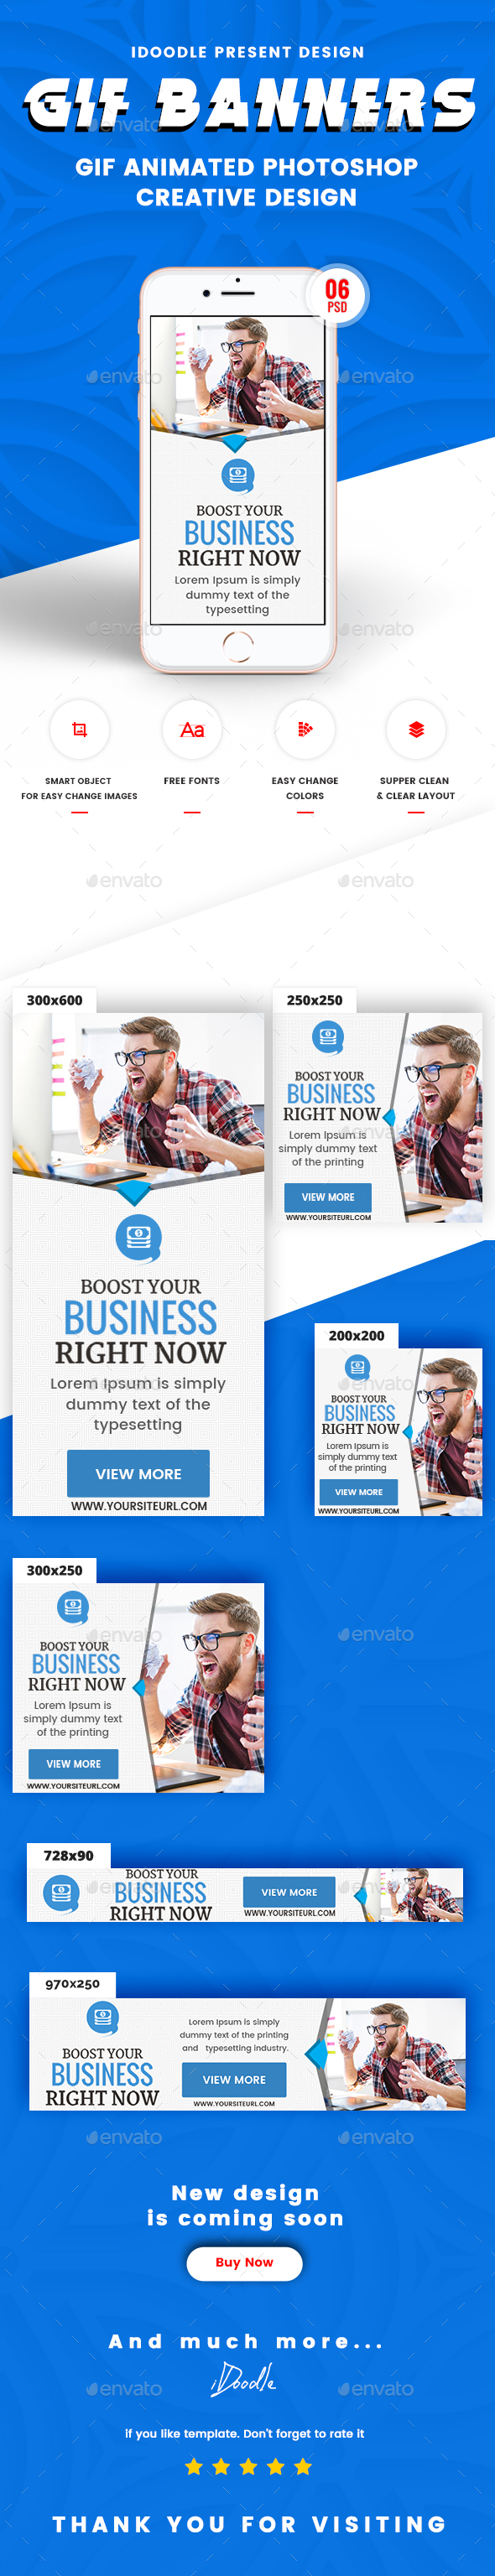 GraphicRiver Animated GIF Multipurpose Business Corporate Banners Ad 21152624